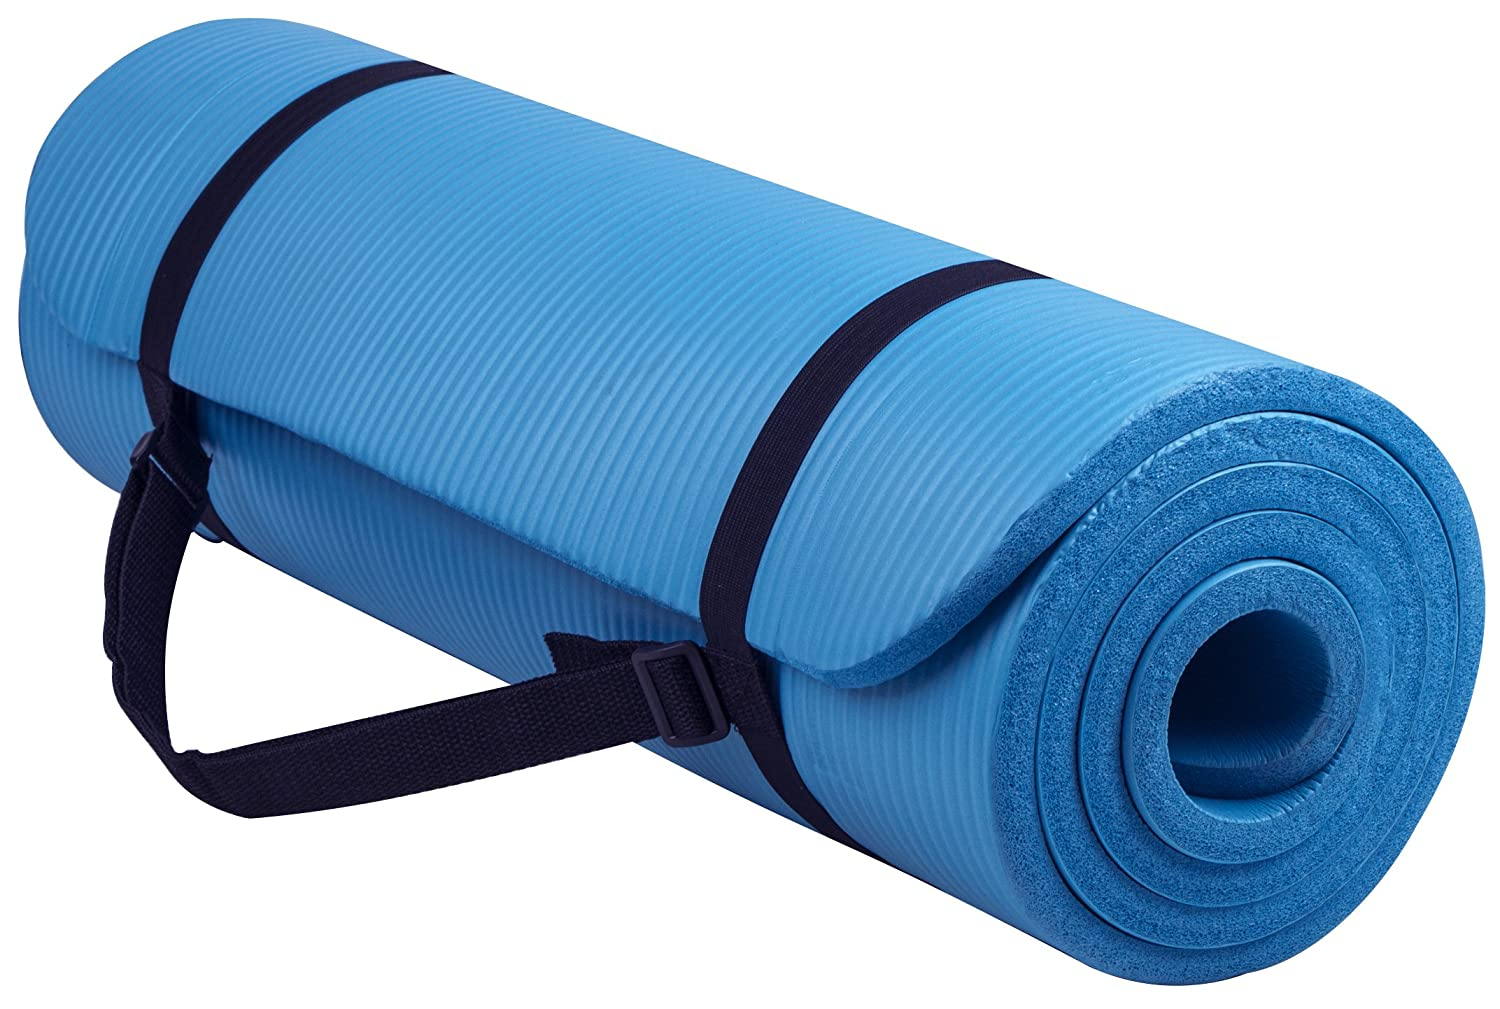 BalanceFrom GoYoga All-Purpose 1/2-Inch Extra Thick High Density Anti-Tear Exercise Yoga Mat with Carrying Strap